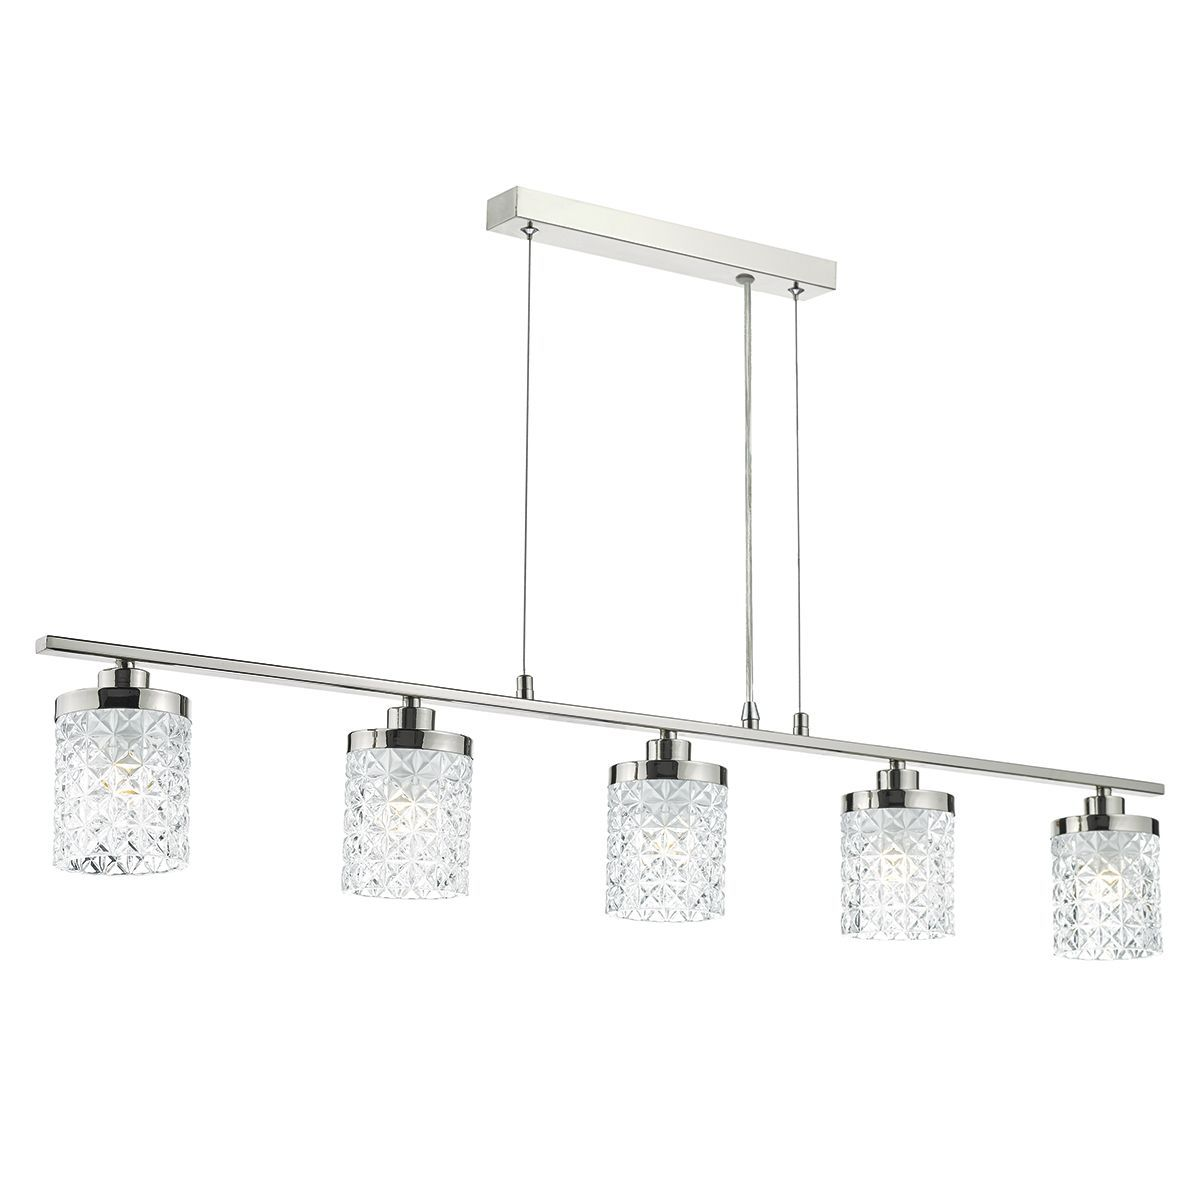 Kitchen Lighting Victoria: Victoria 5 Light Bar Pendant Polished Nickel Clear Glass